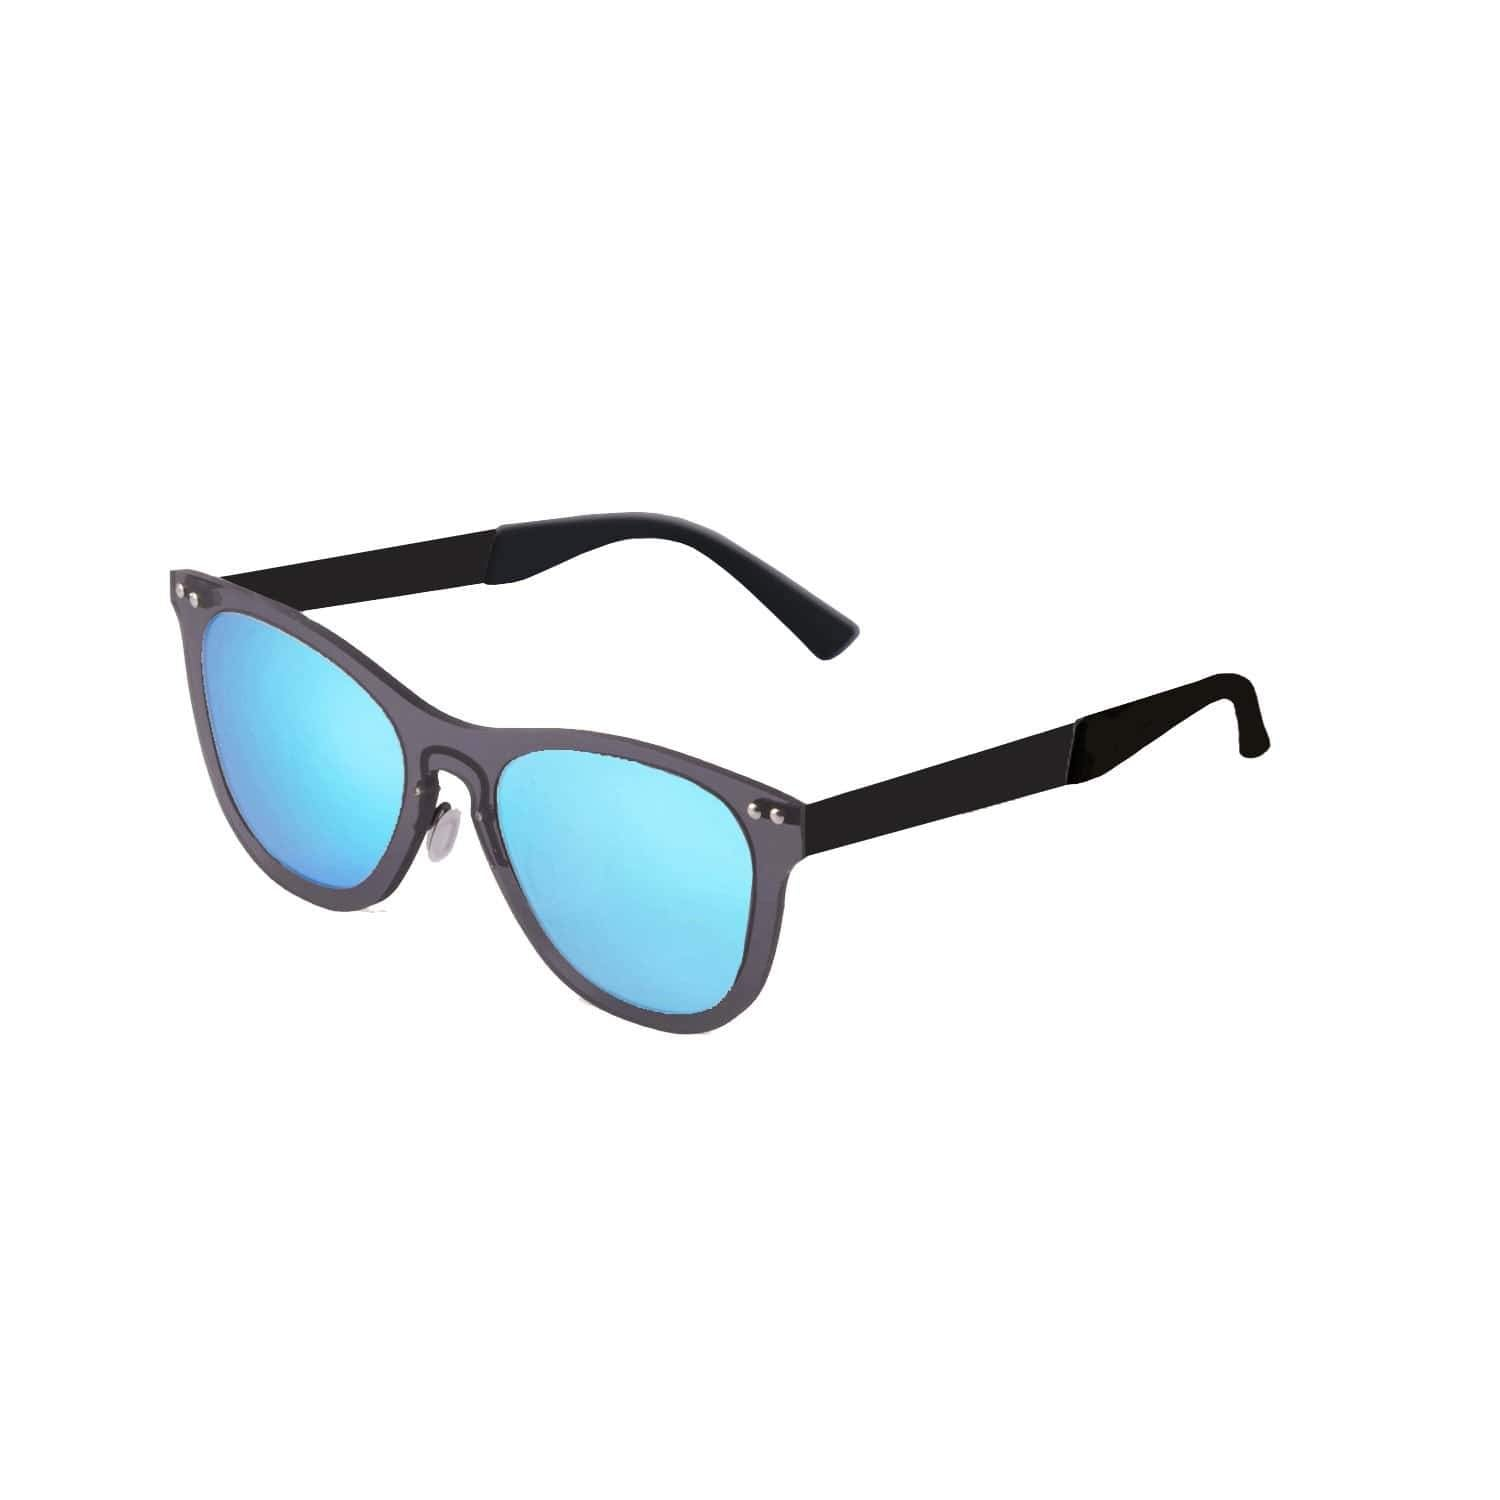 Ocean Sunglasses Accessories Sunglasses blue-4 / NOSIZE Ocean Sunglasses - FLORENCIA